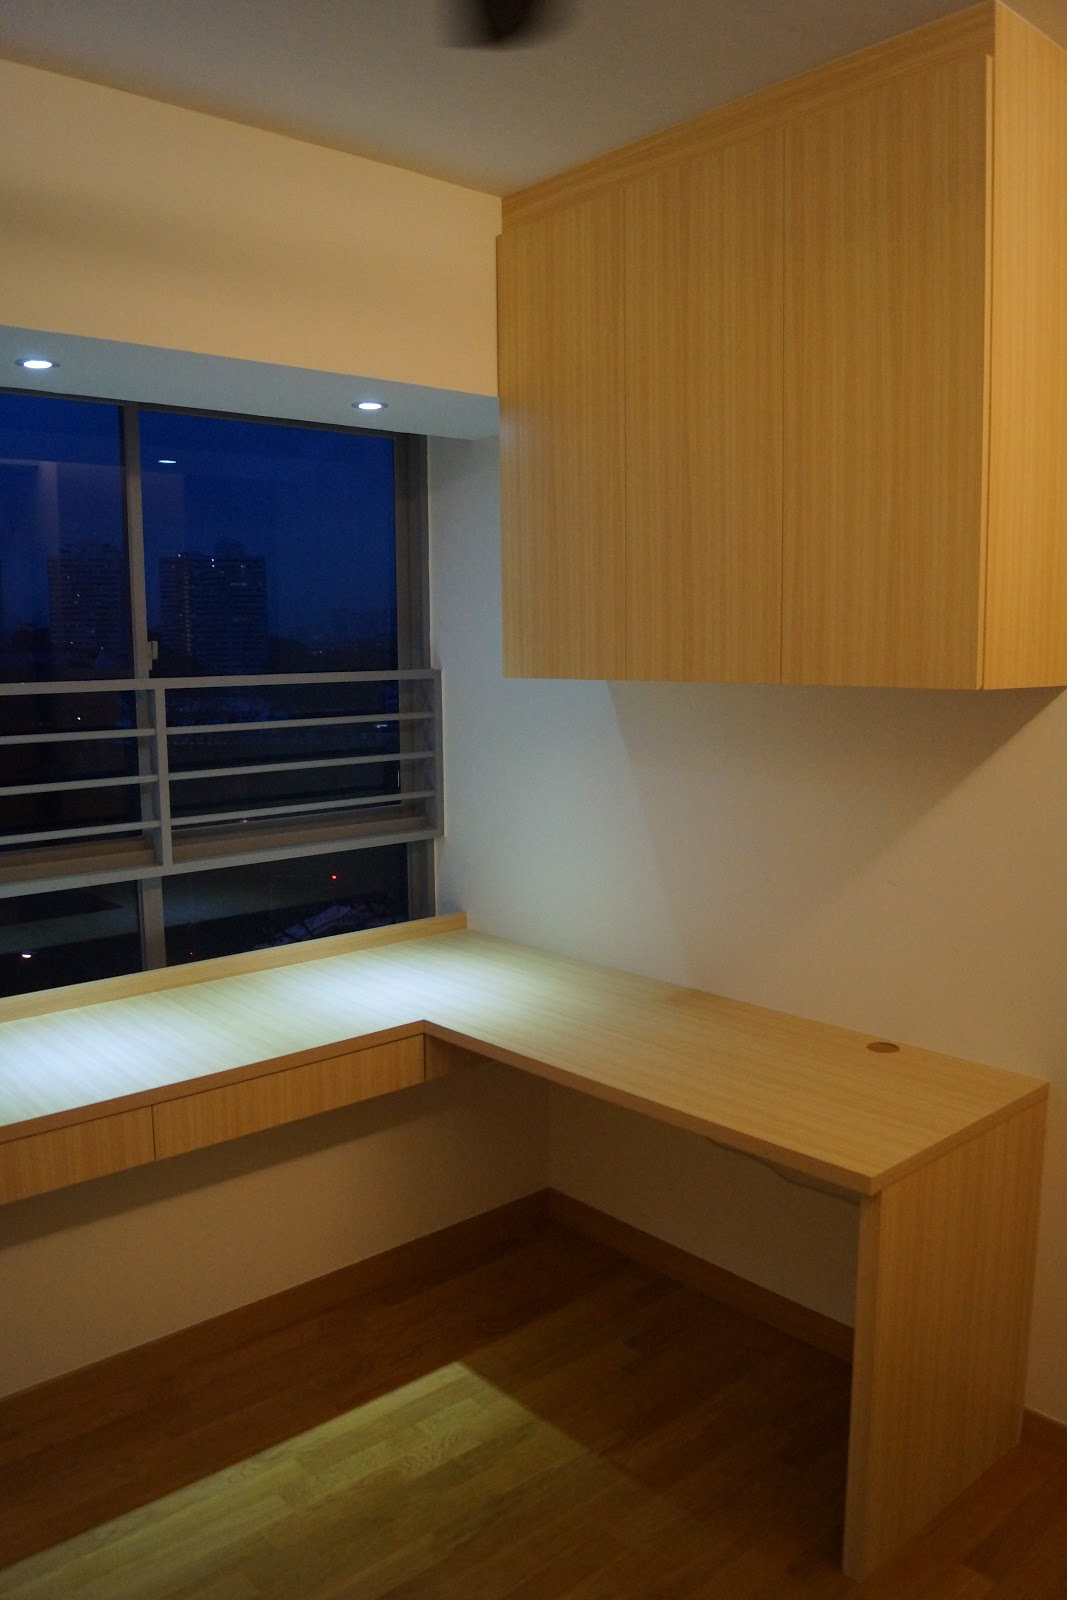 Singapore Hdb Room With Study Table: Plaster Ceiling & Partition Drywall Singapore: The Peak